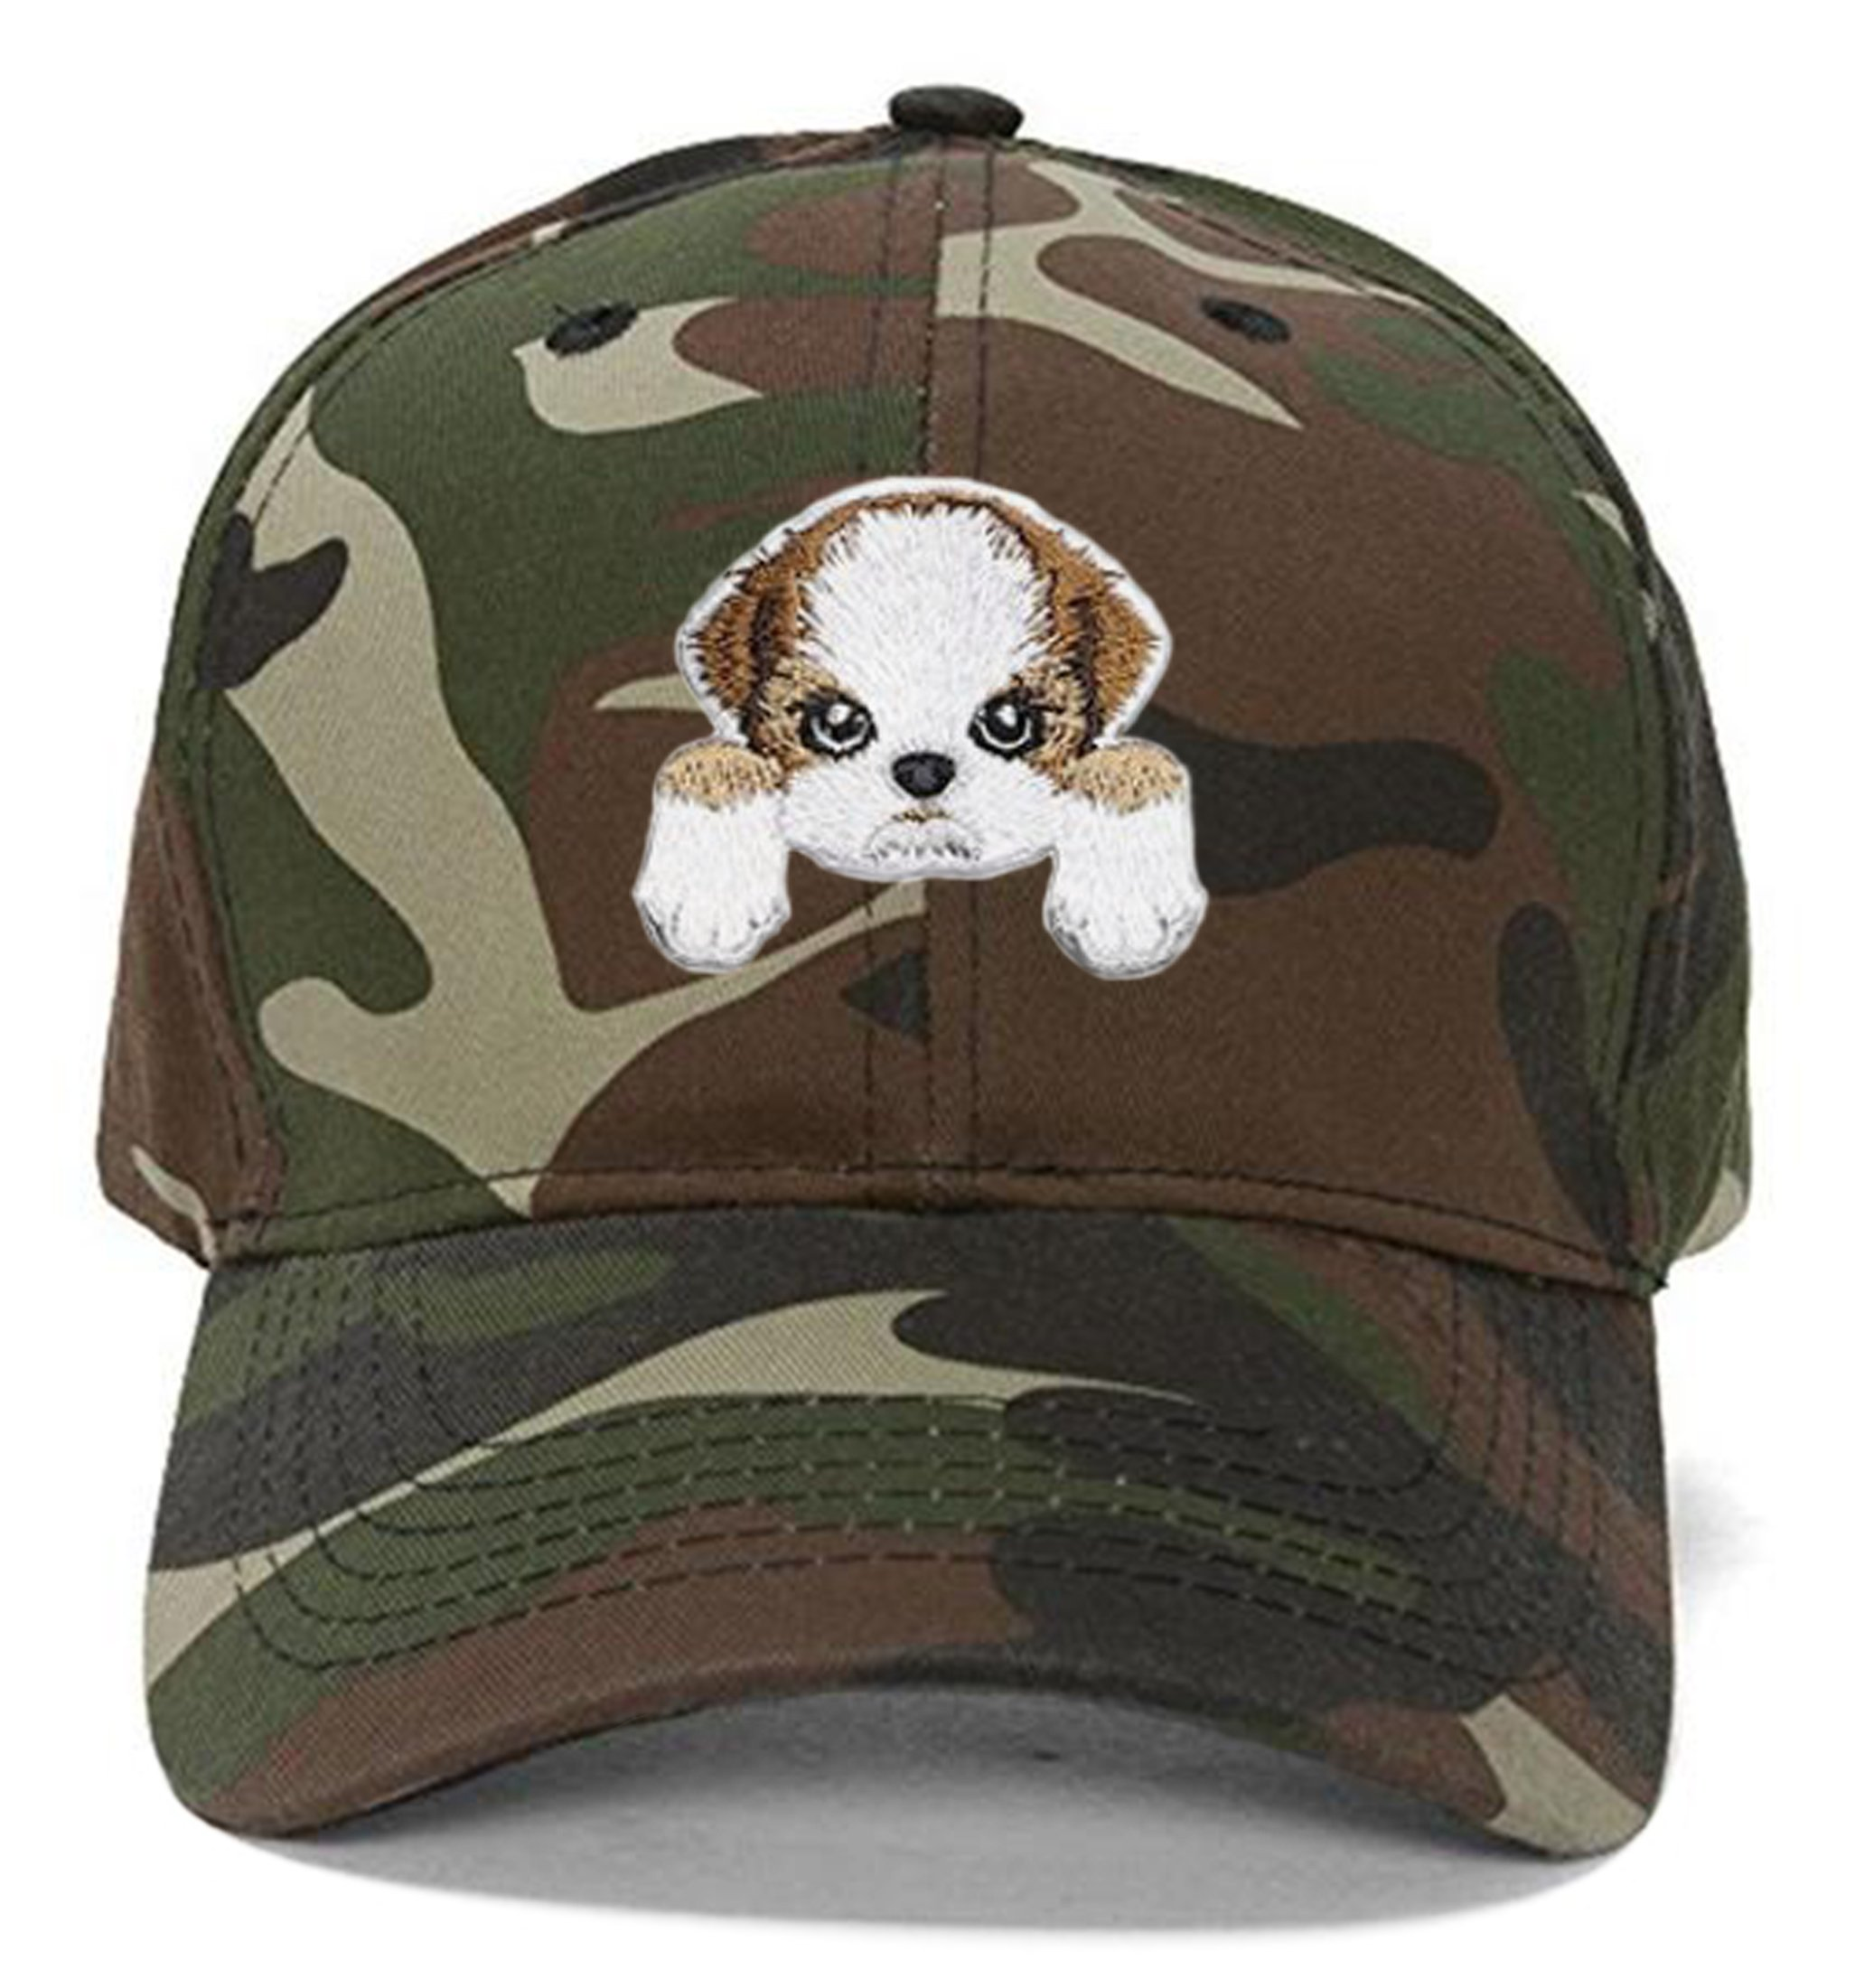 Shih Tzu Dog Hat Cute Puppy Dog Cap (Camo)